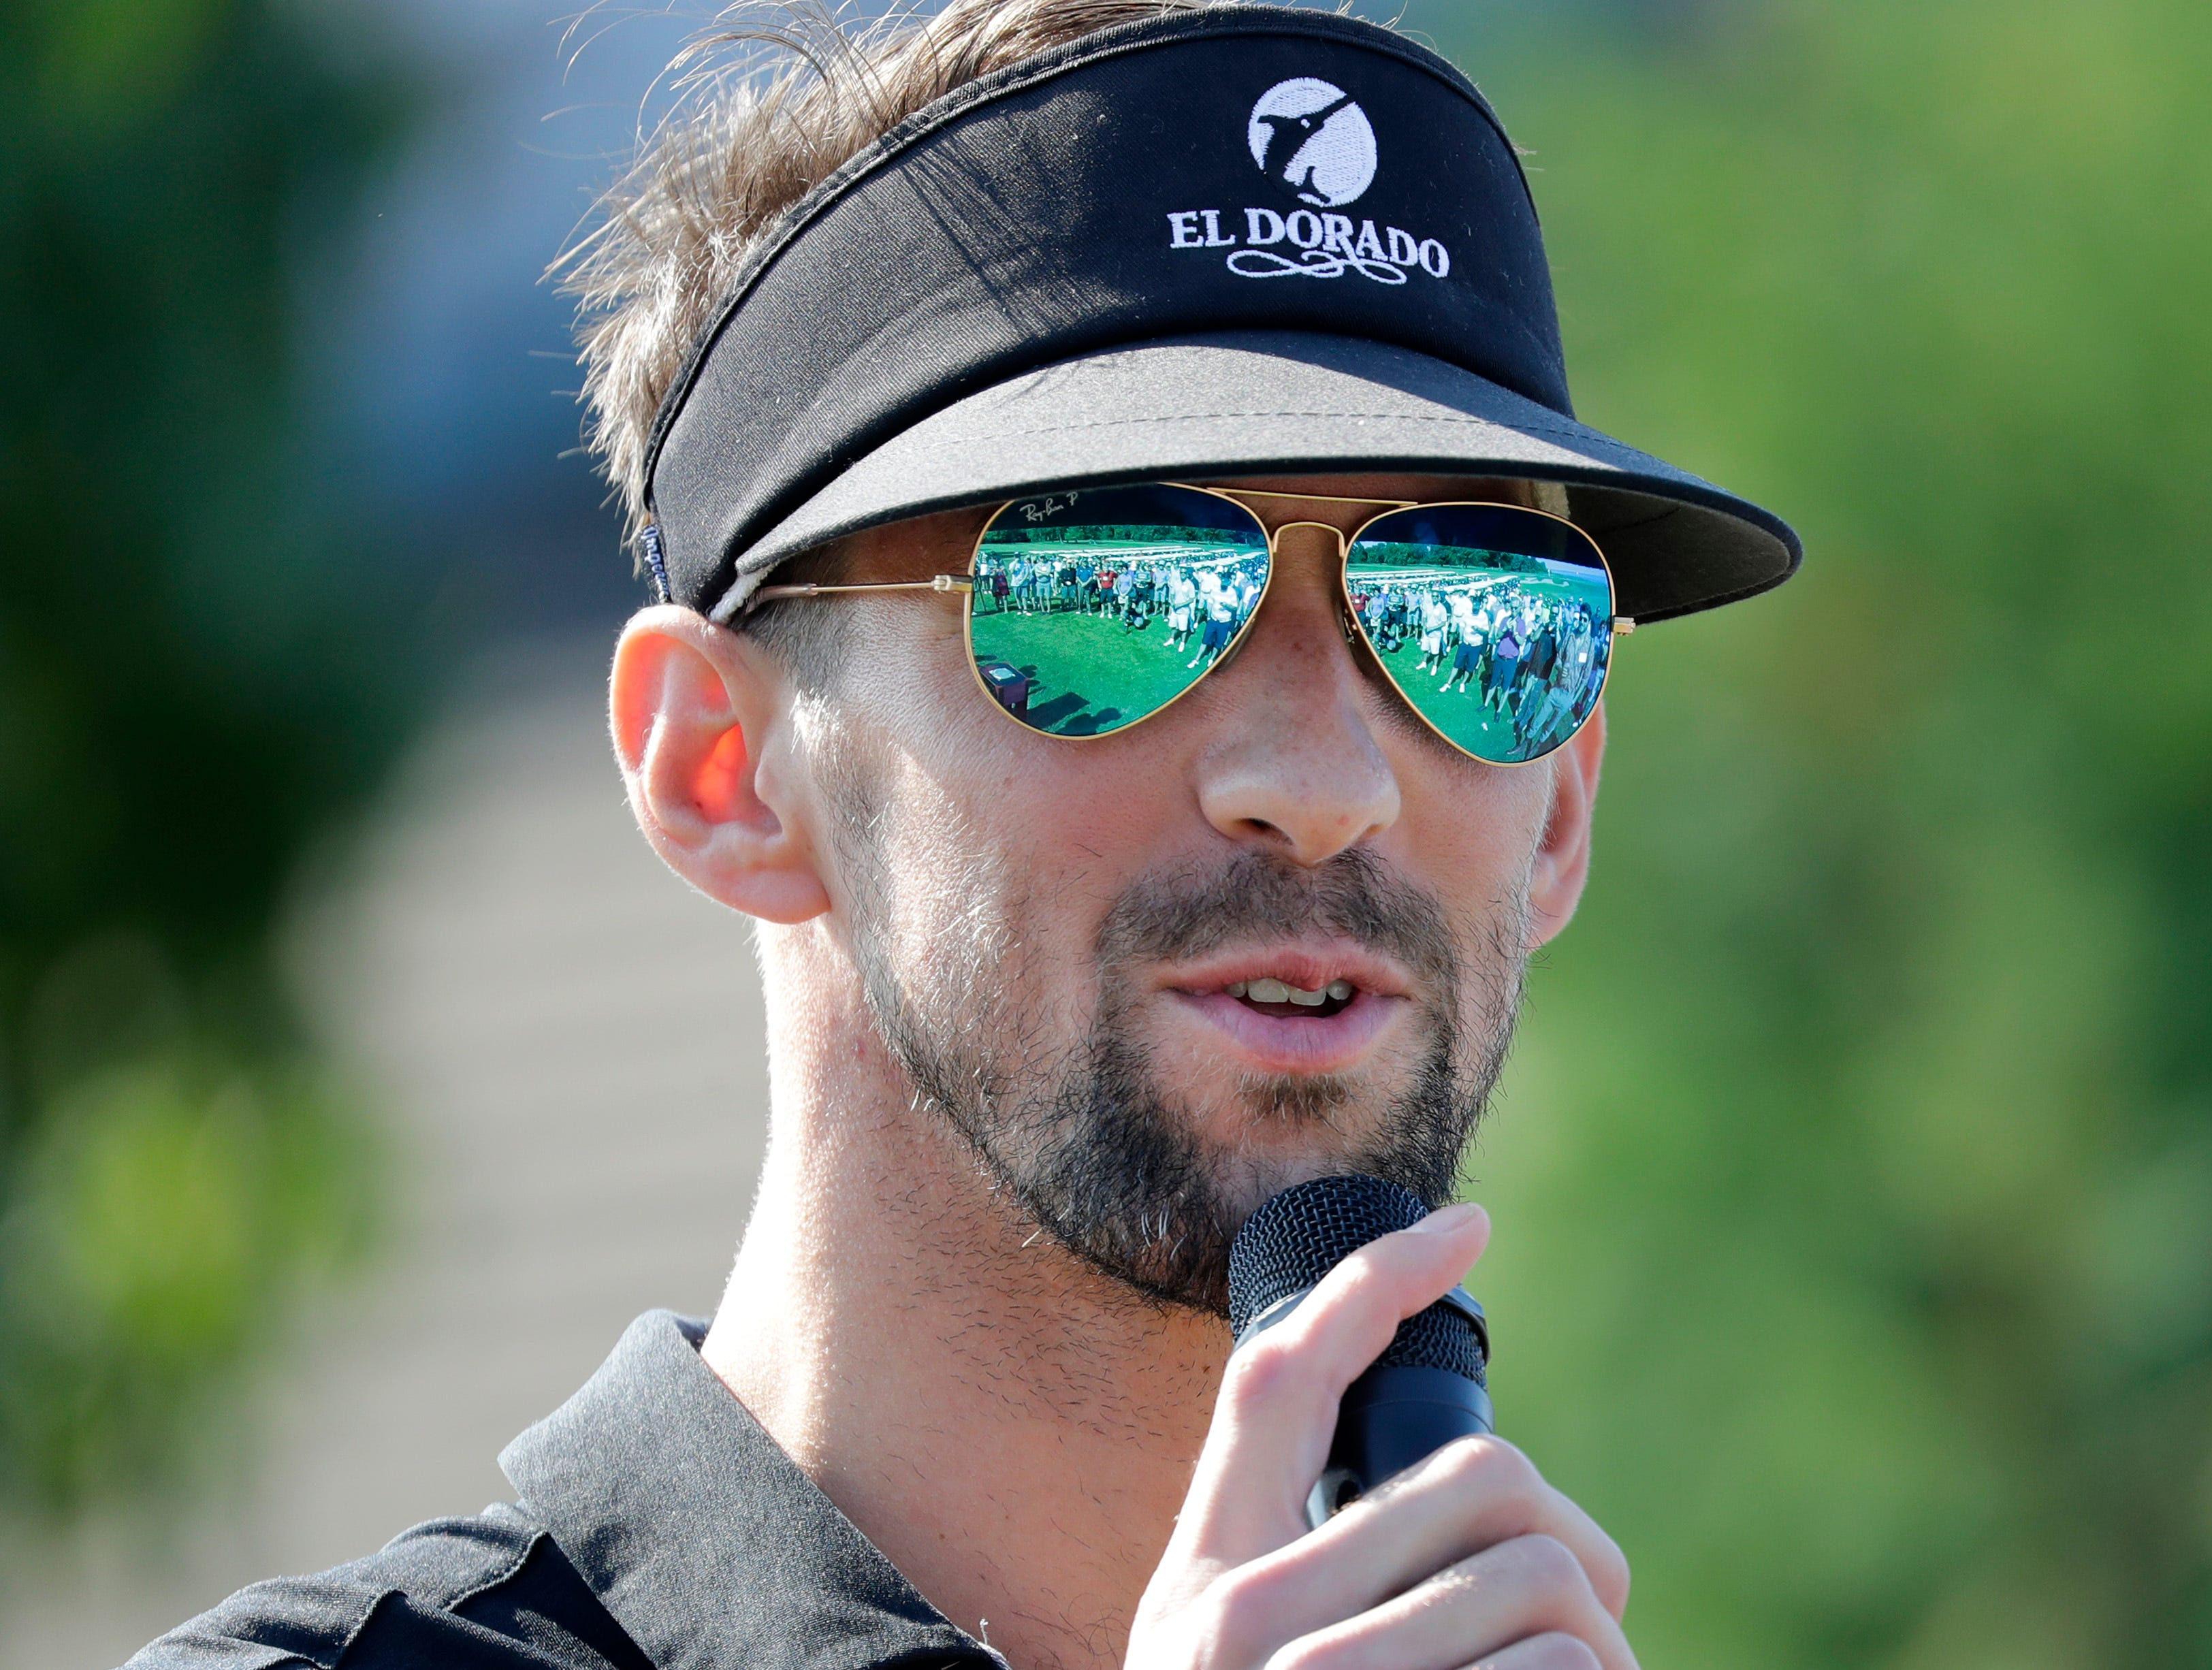 Michael Phelps gives the opening remarks before the start of the U.S. Venture Open Wednesday, Aug. 8, 2018, at North Shore Golf Club in Menasha, Wis.Danny Damiani/USA TODAY NETWORK-Wisconsin